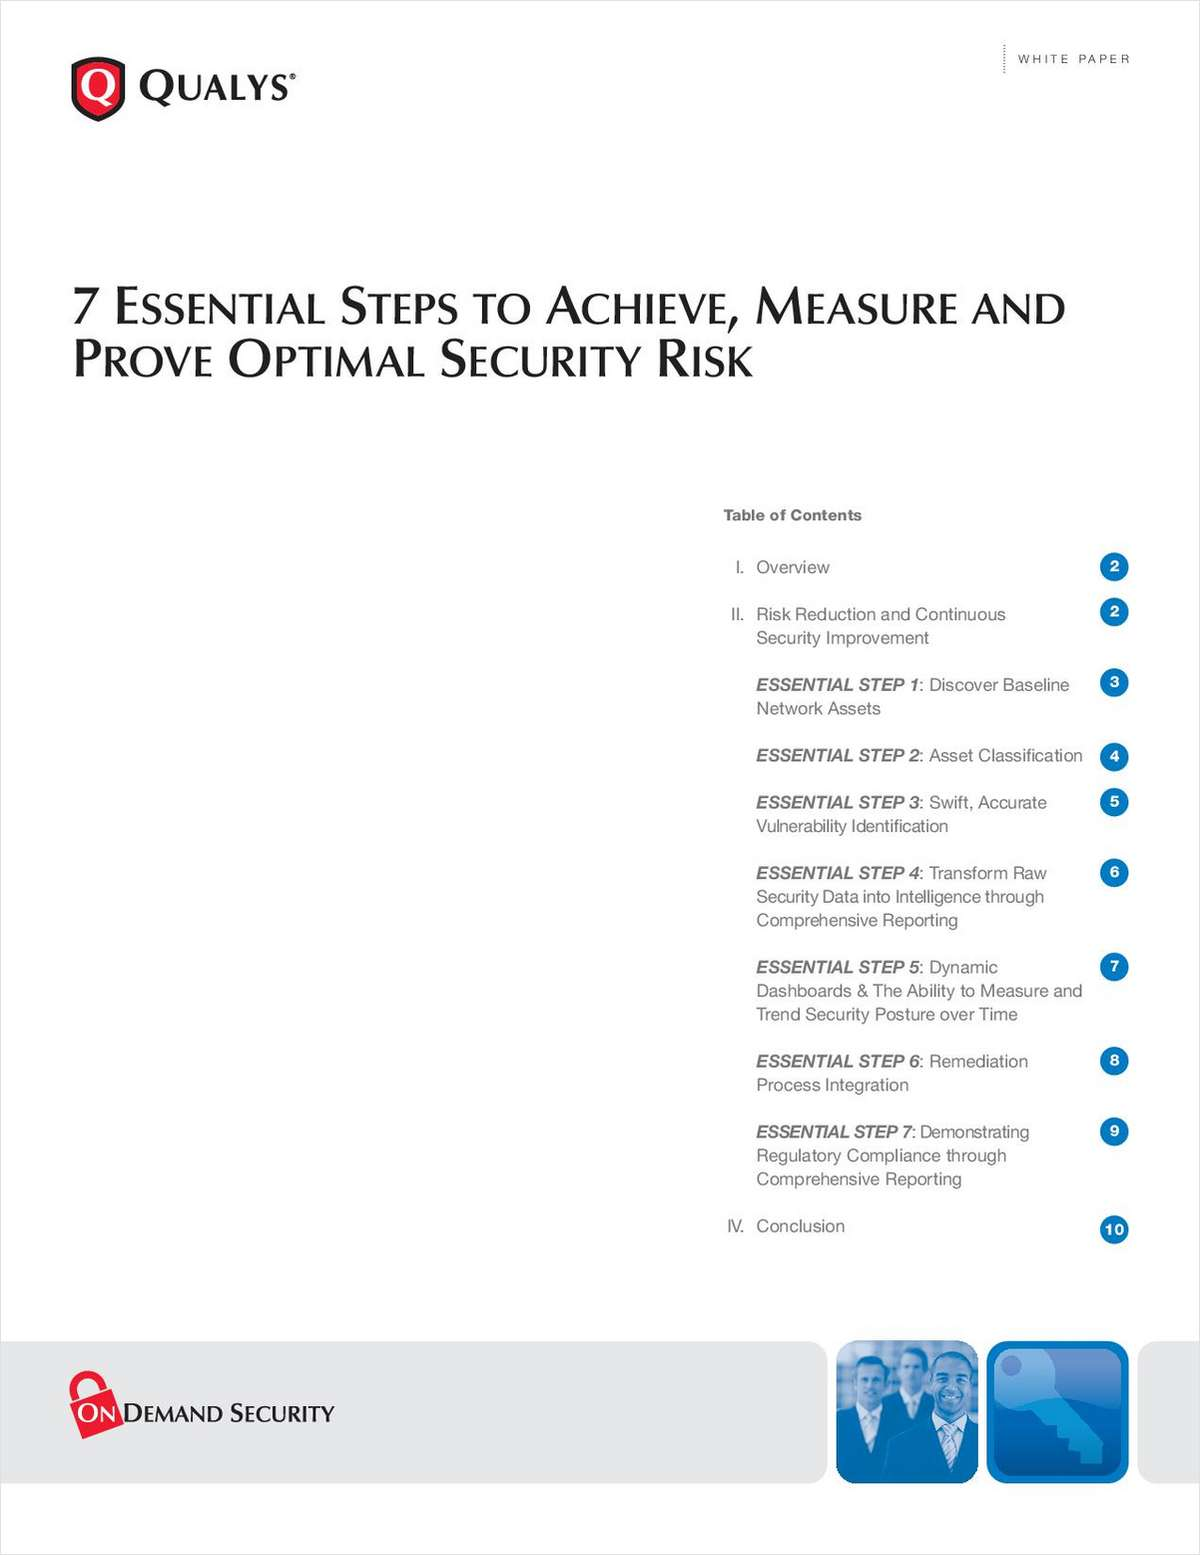 7 Essential Steps to Achieve, Measure and Prove Optimal Security Risk Reduction